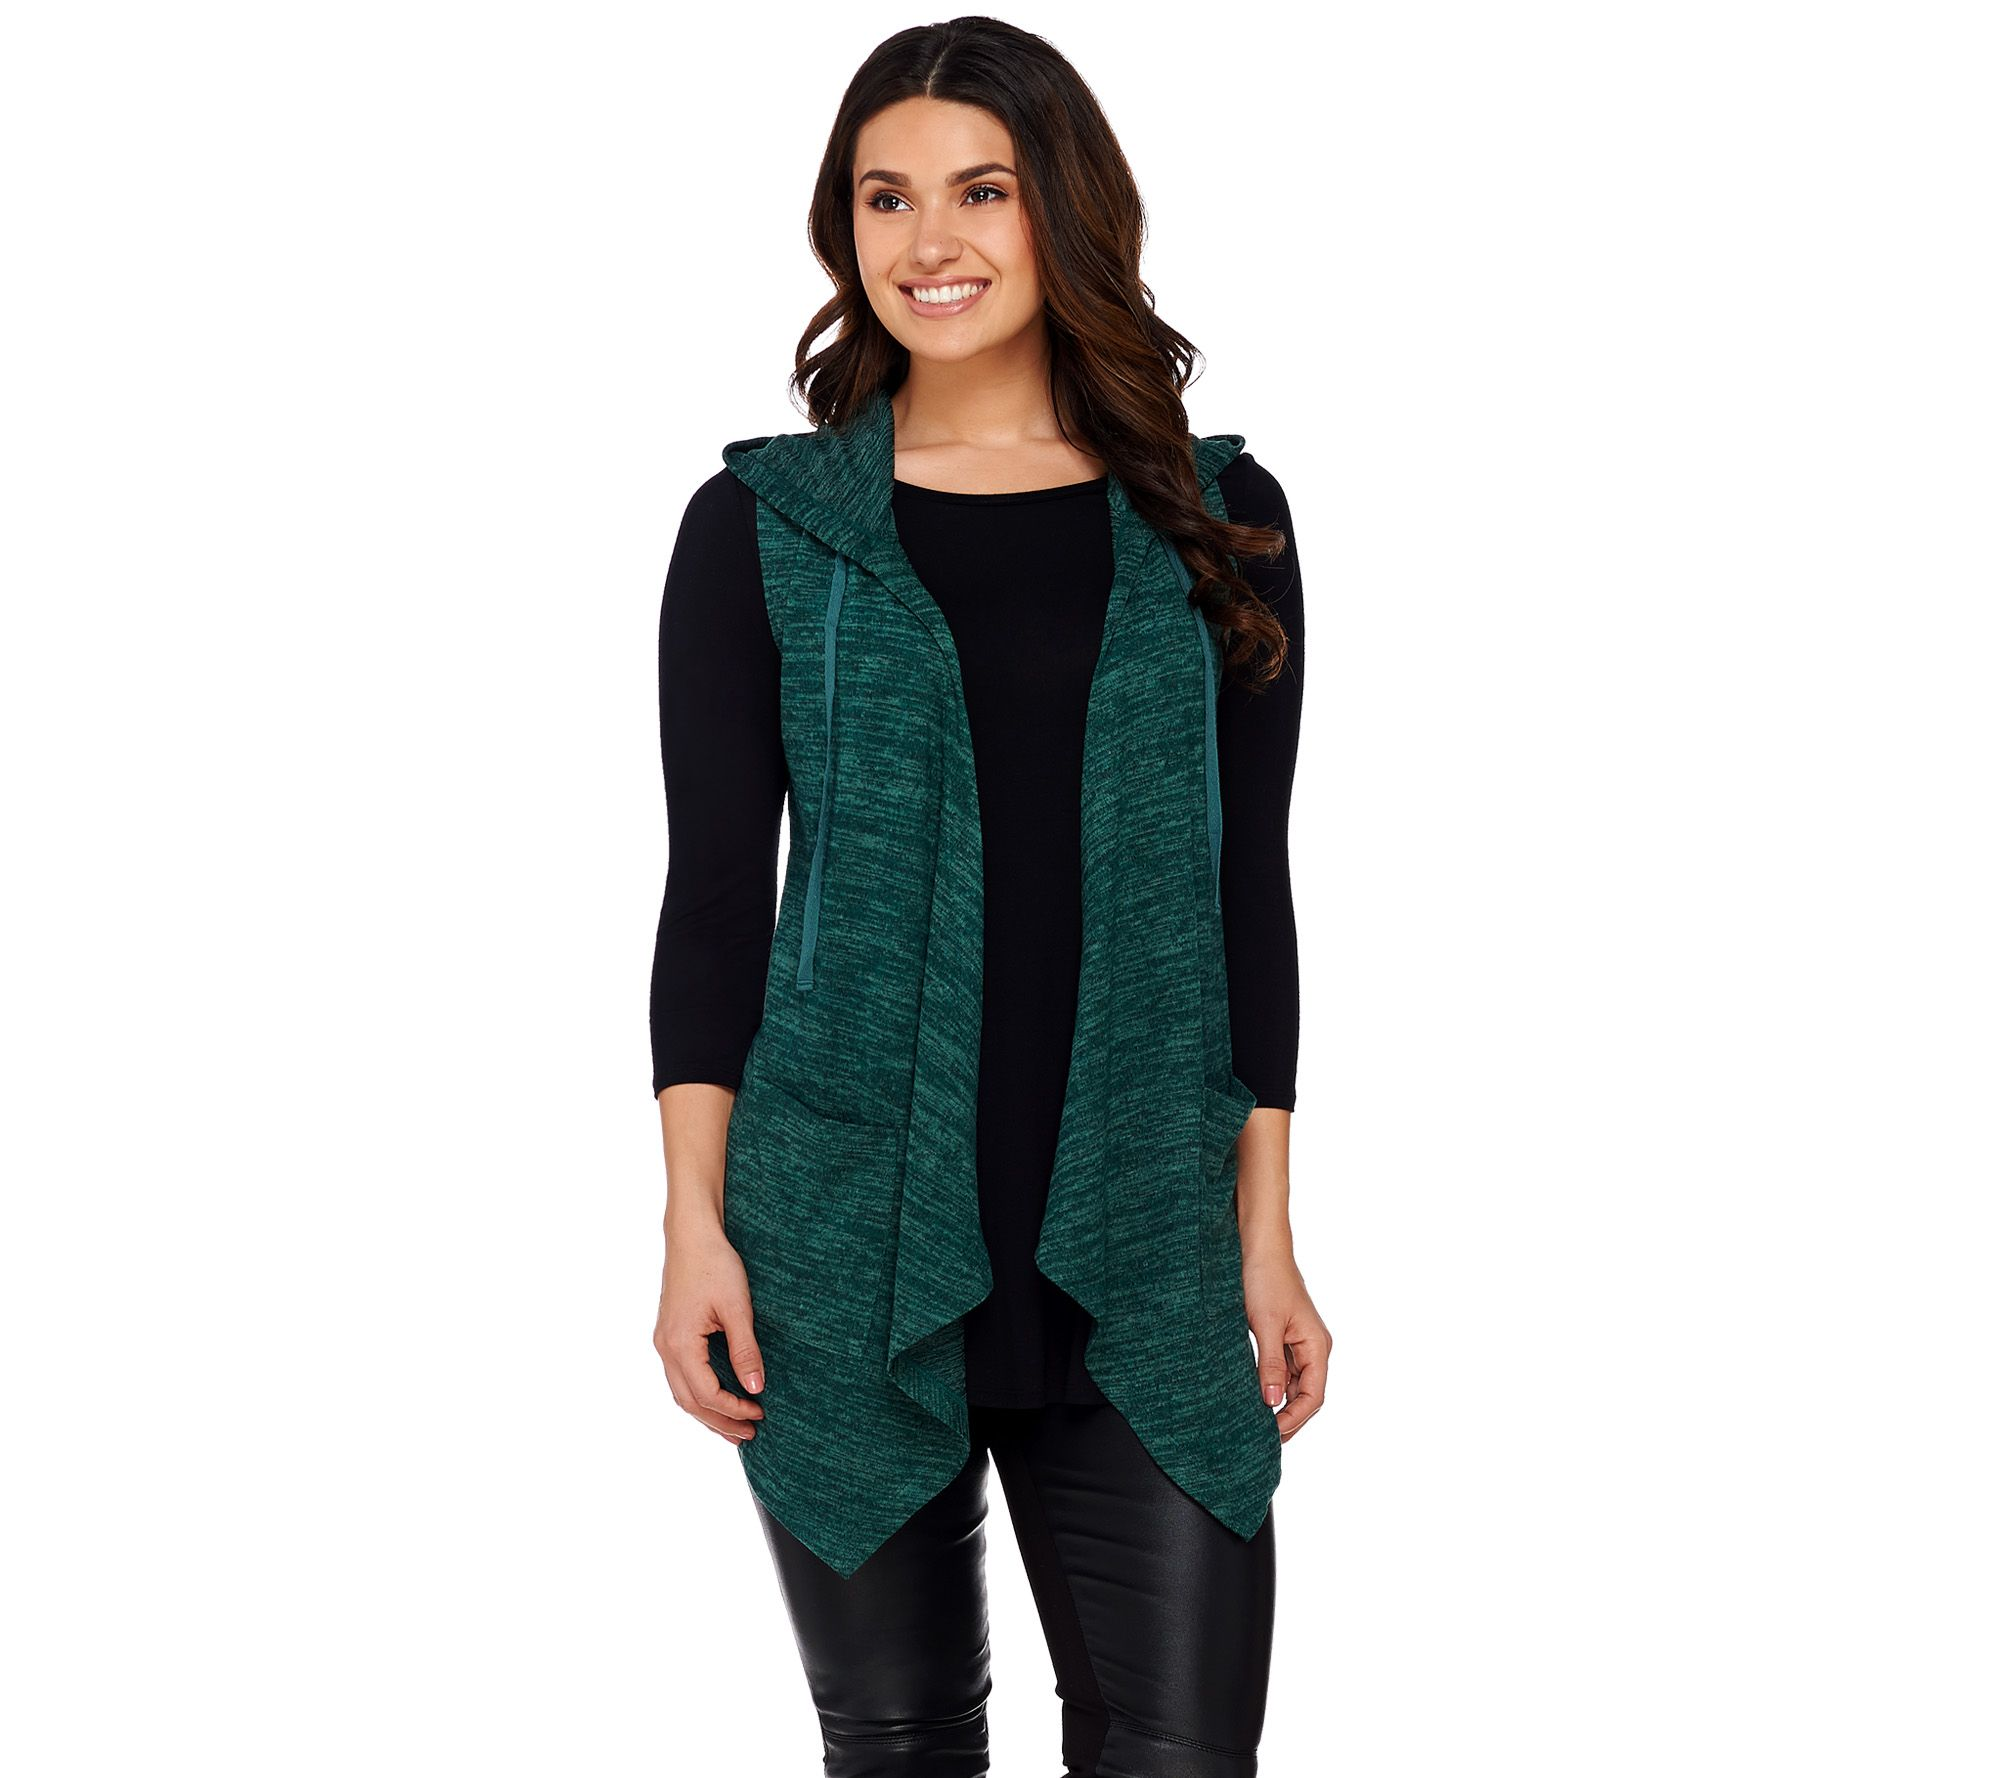 LOGO by Lori Goldstein Sweater Knit Hooded Vest with Pockets ...